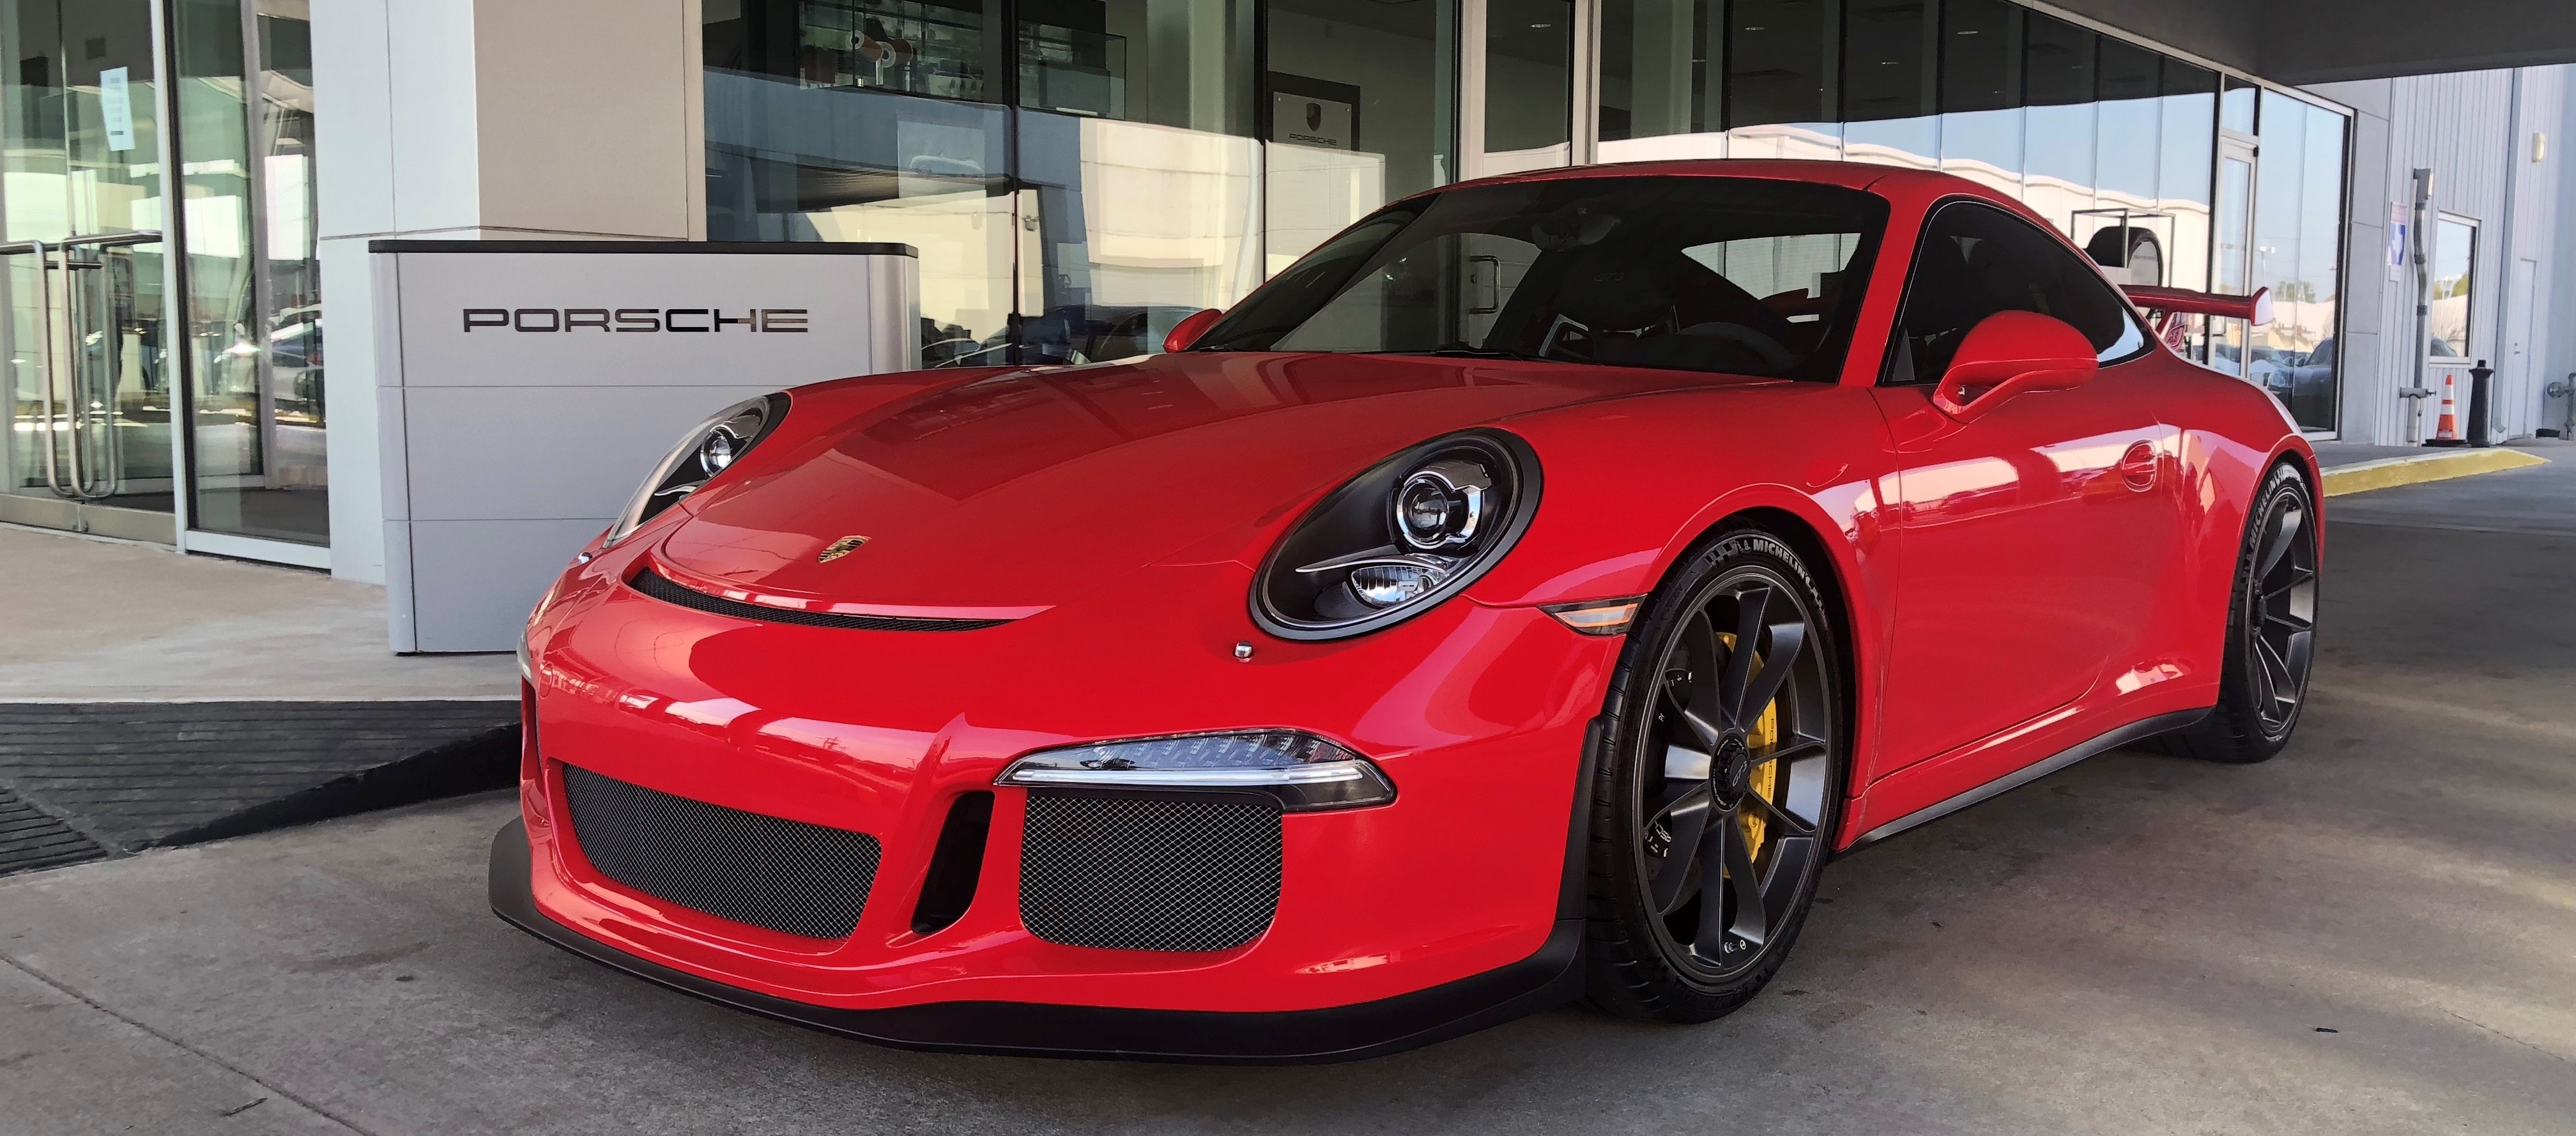 Porsche Auto Service Repair In Houston Porsche Of West Houston